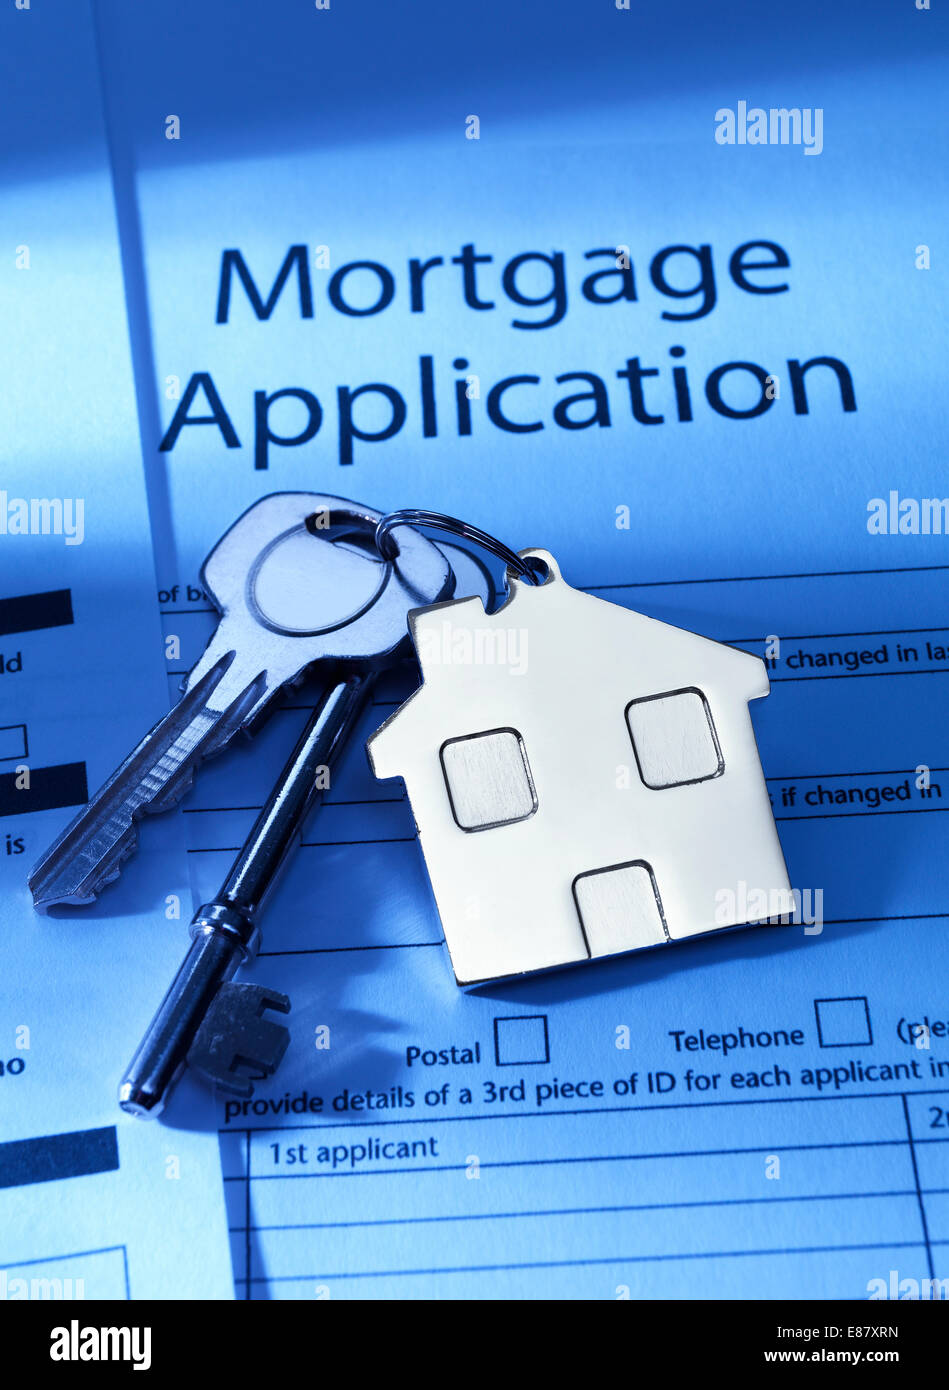 Mortgage Application to go - Stock Image